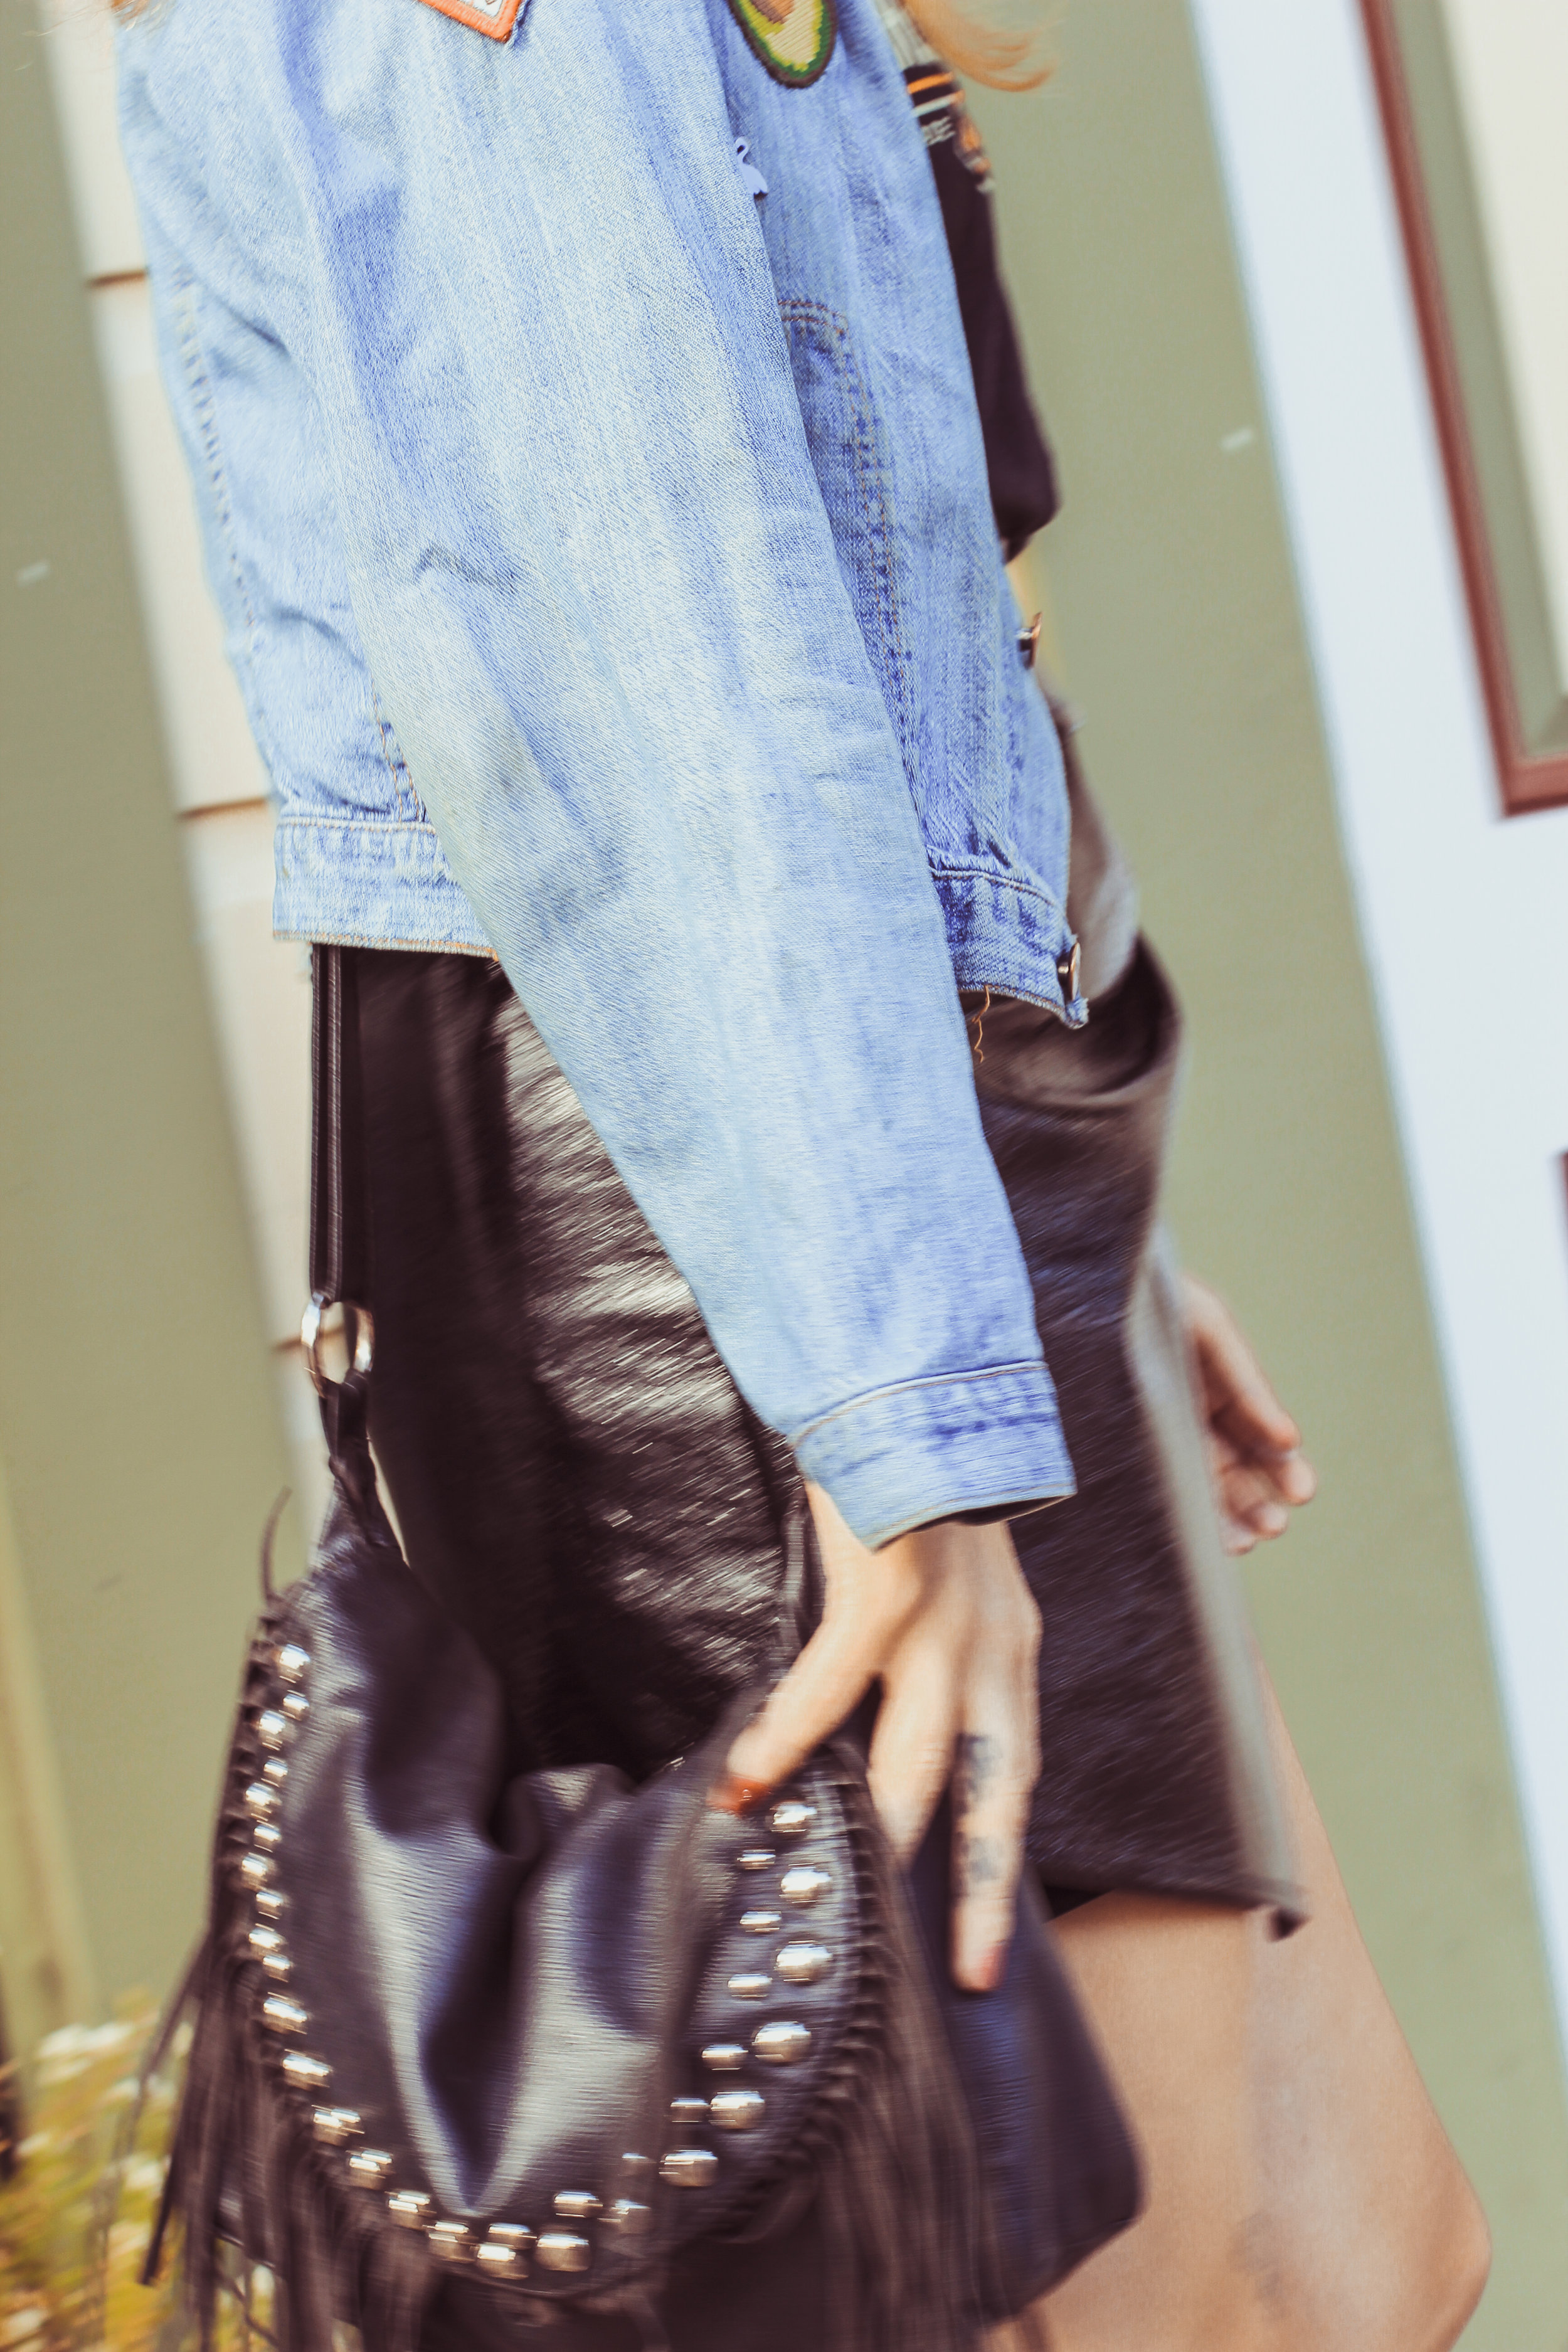 Edgy Punk outfit Details